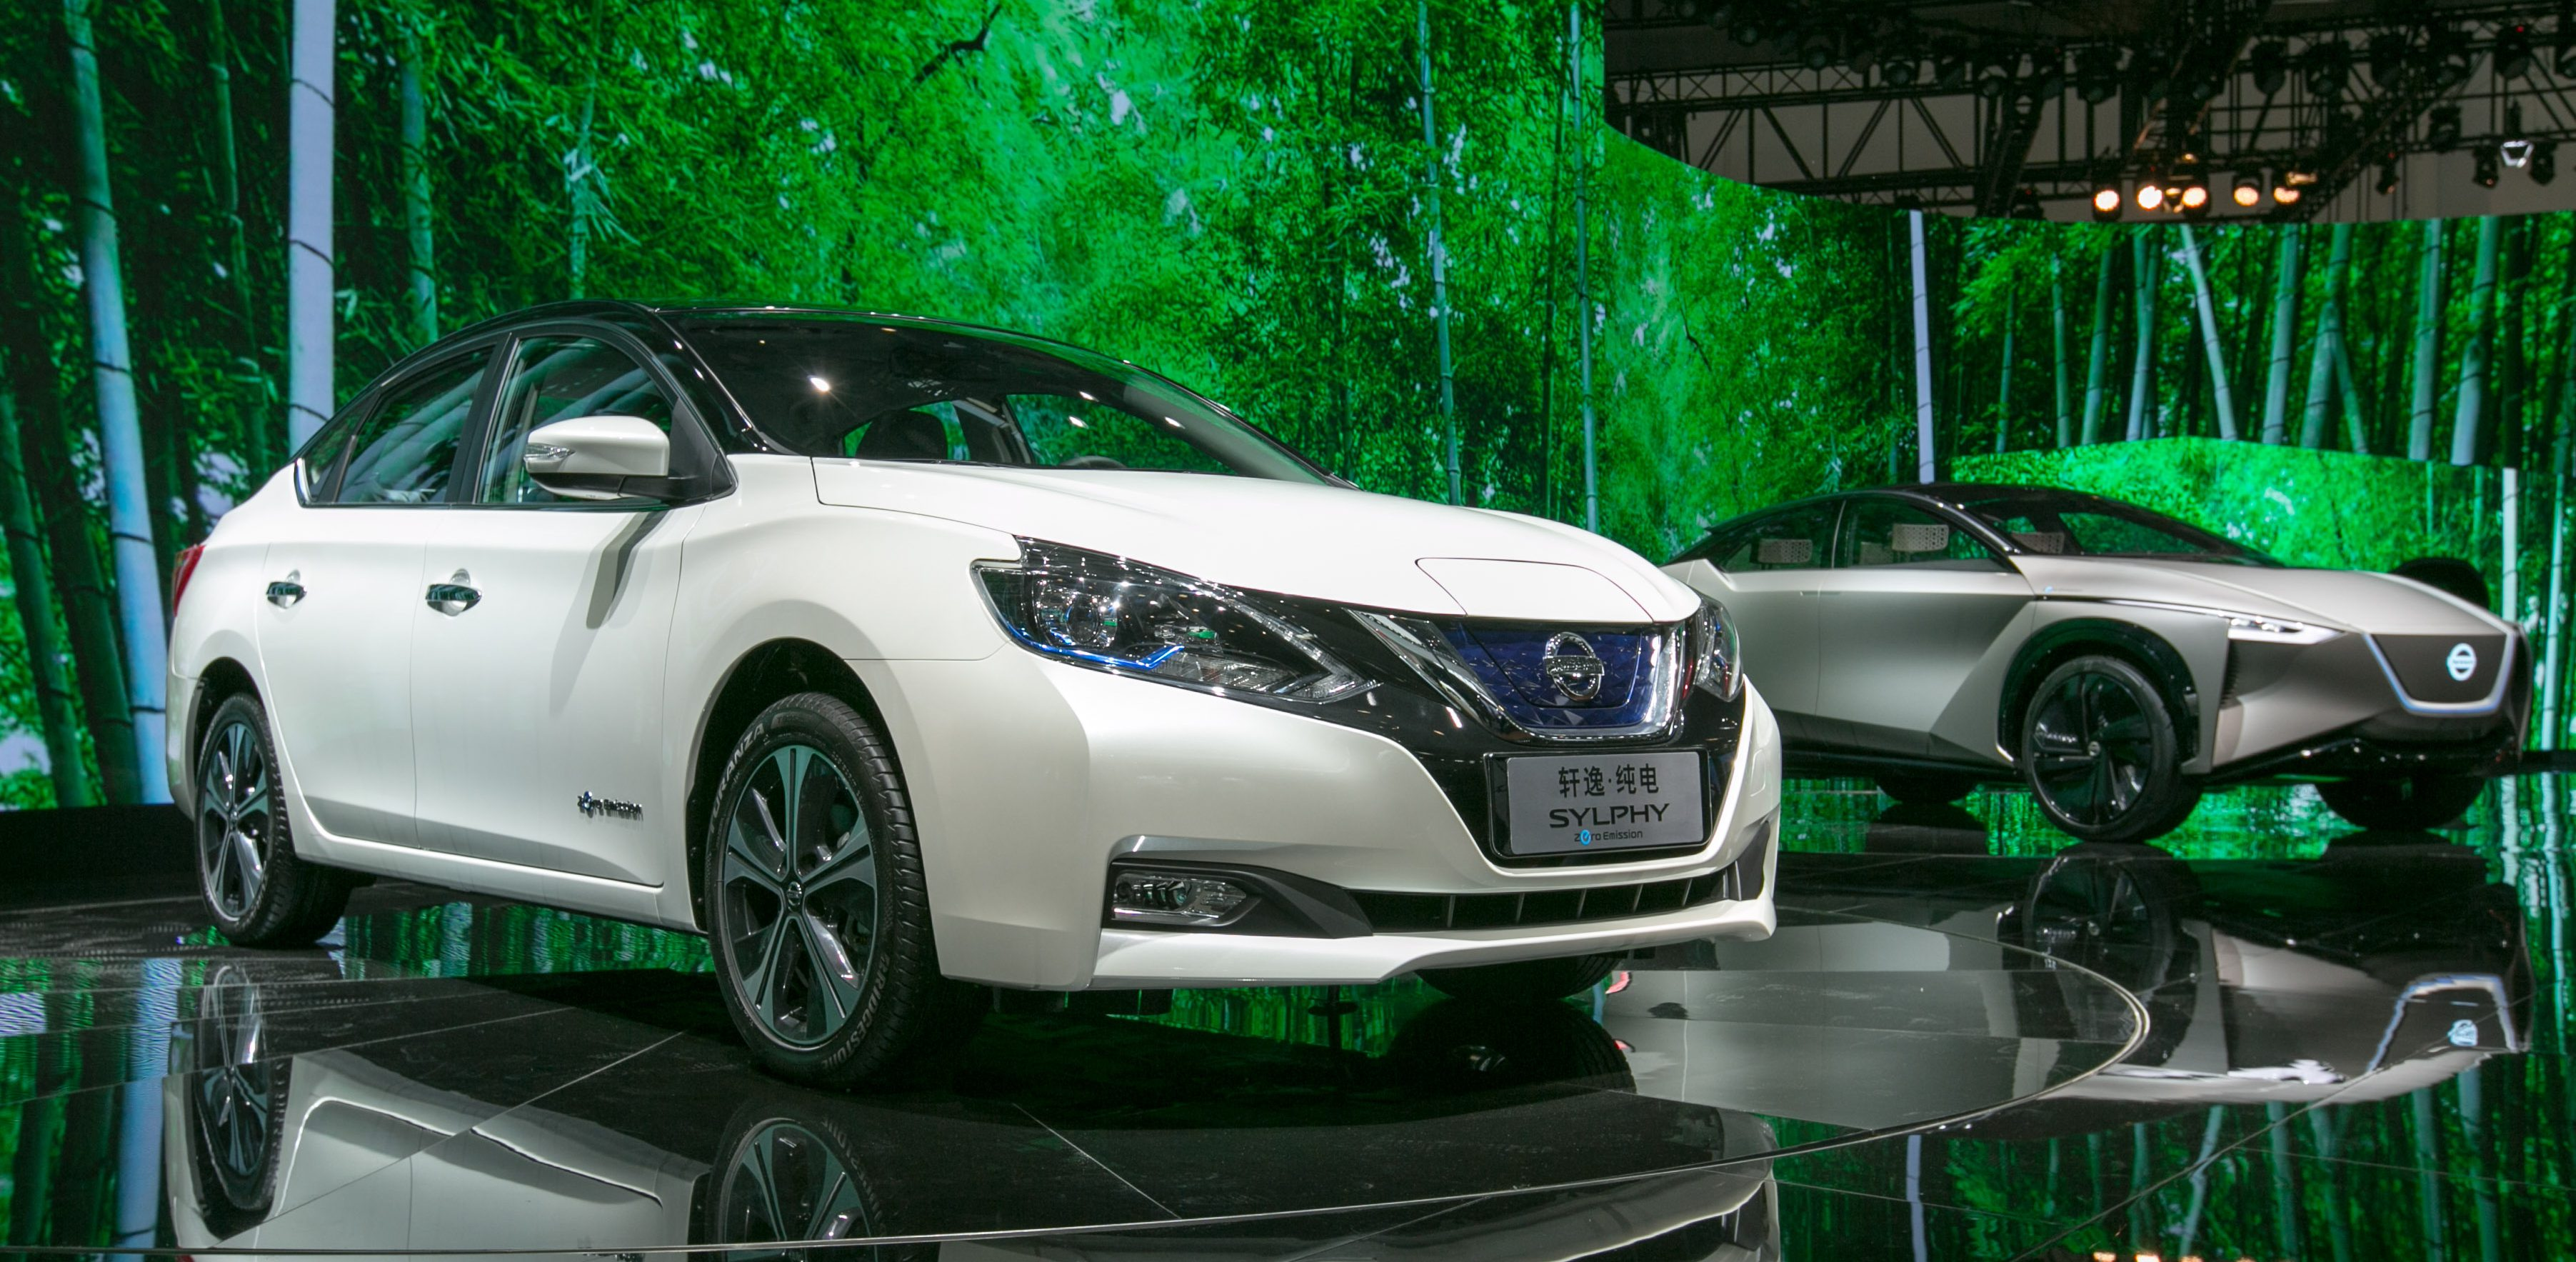 Nissan Unveils A New Leaf Based Electric Car To Be Mass Produced In